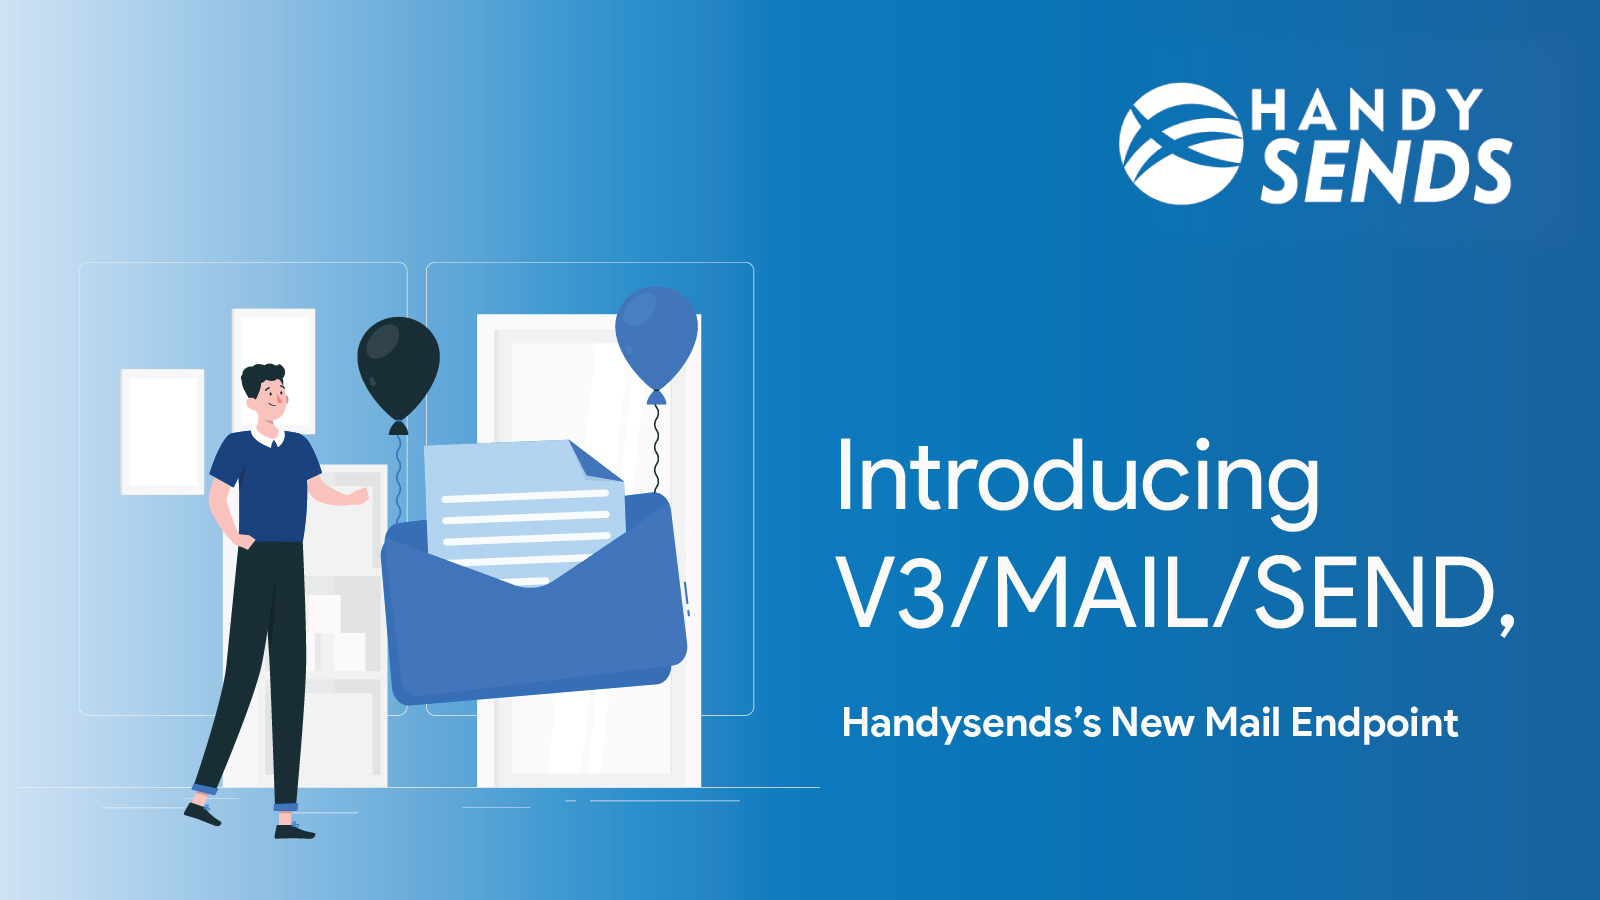 Introducing V3/MAIL/SEND, HandySends's New Mail Endpoint